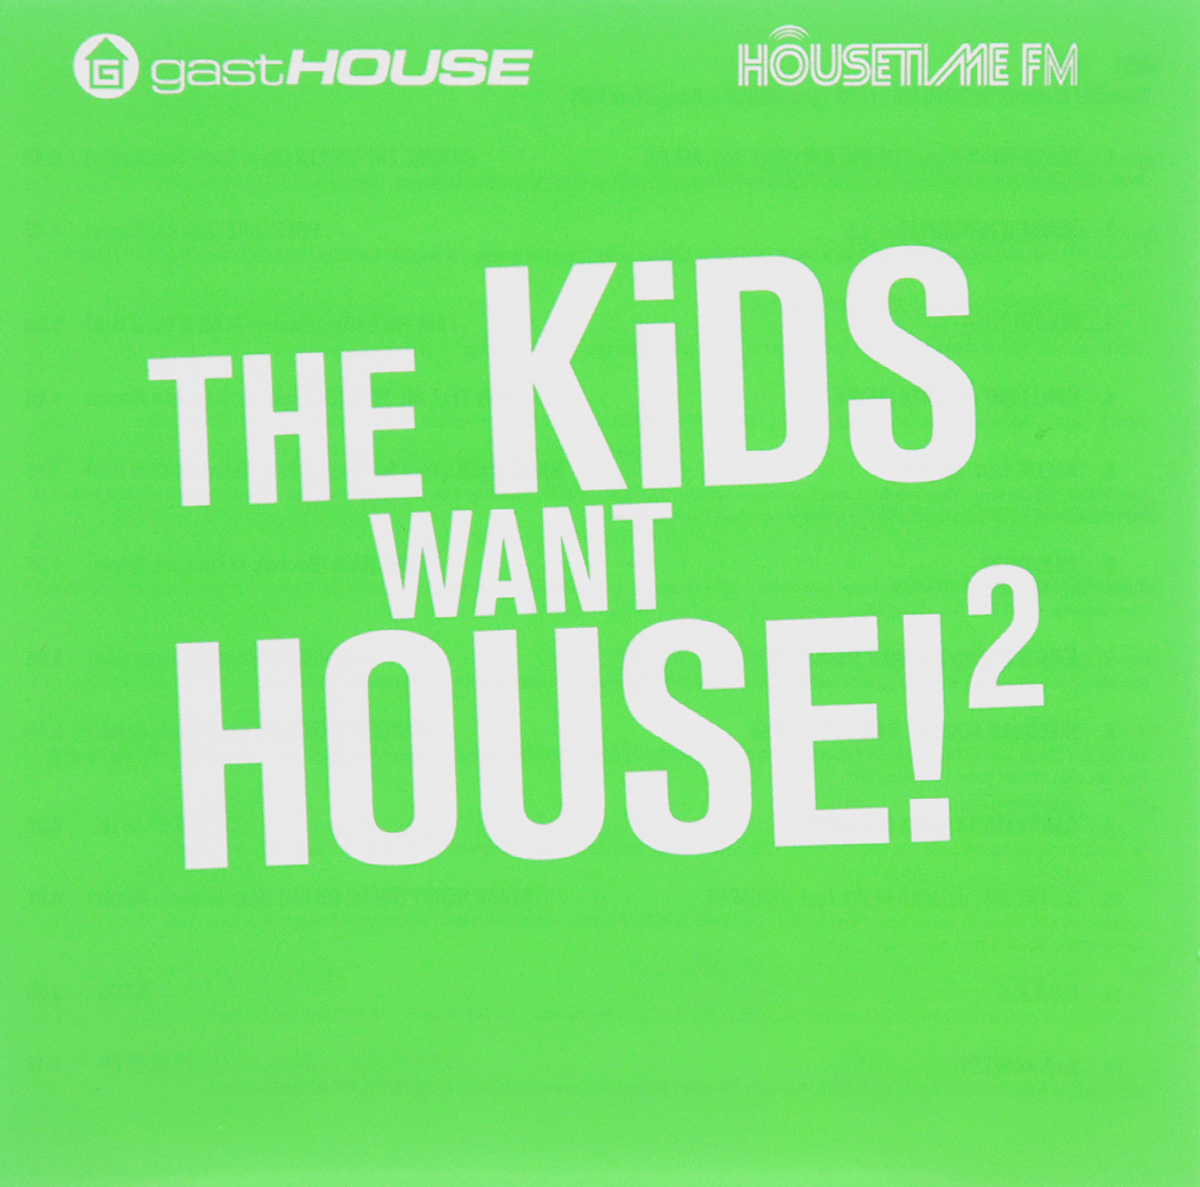 CD 1 - selected & mixed by Bootmasters (gastHOUSE - HouseTime.FM)CD 2 - selected & mixed by TOB & DiscoFlasher (We Love House - HouseTime.FM)